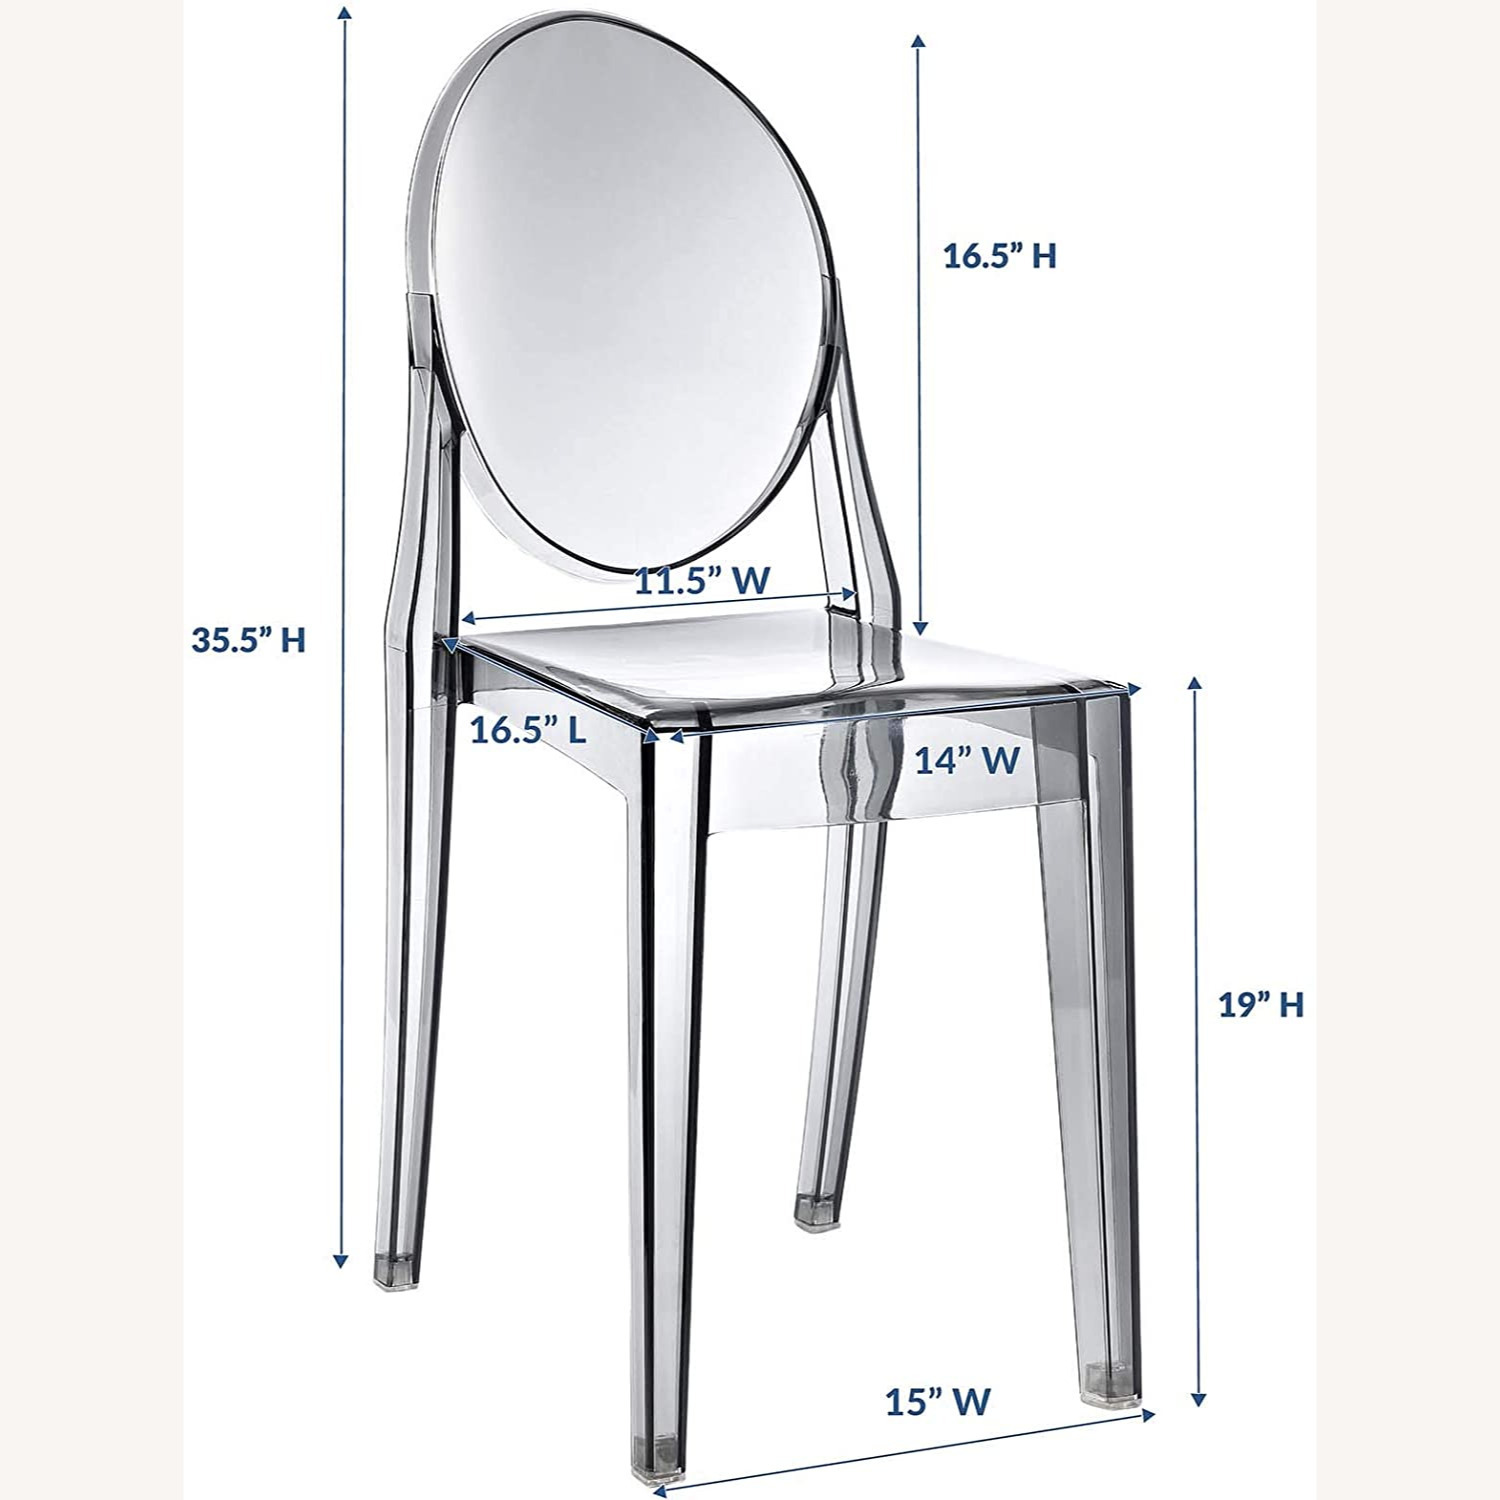 Modway Casper Ghost Dining Chair in Smoke (Set of 4) - image-4